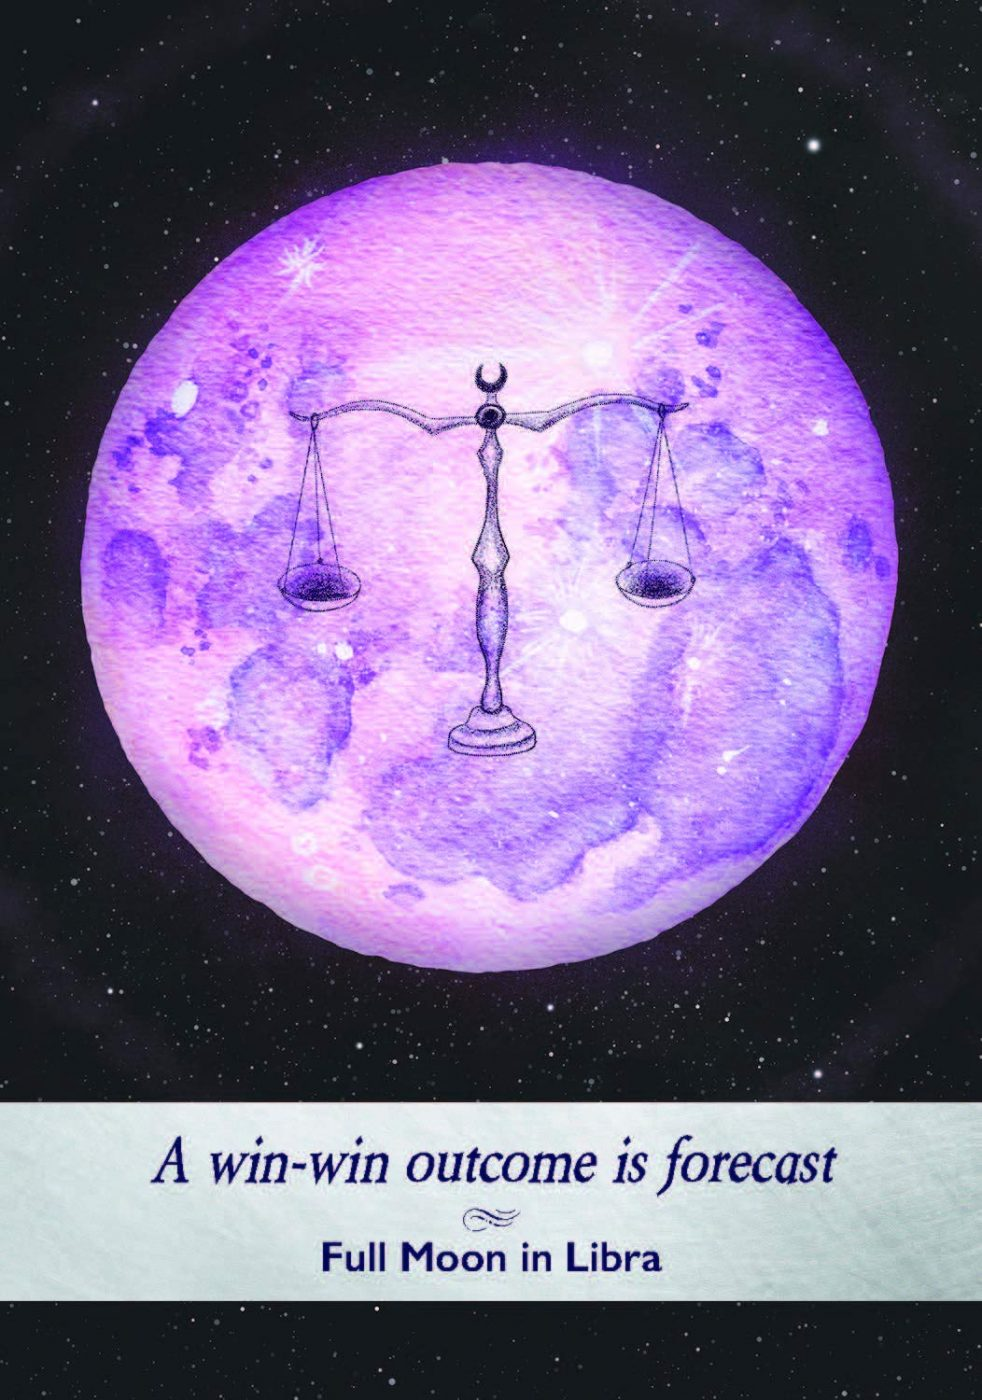 moonology full moon in libra card example